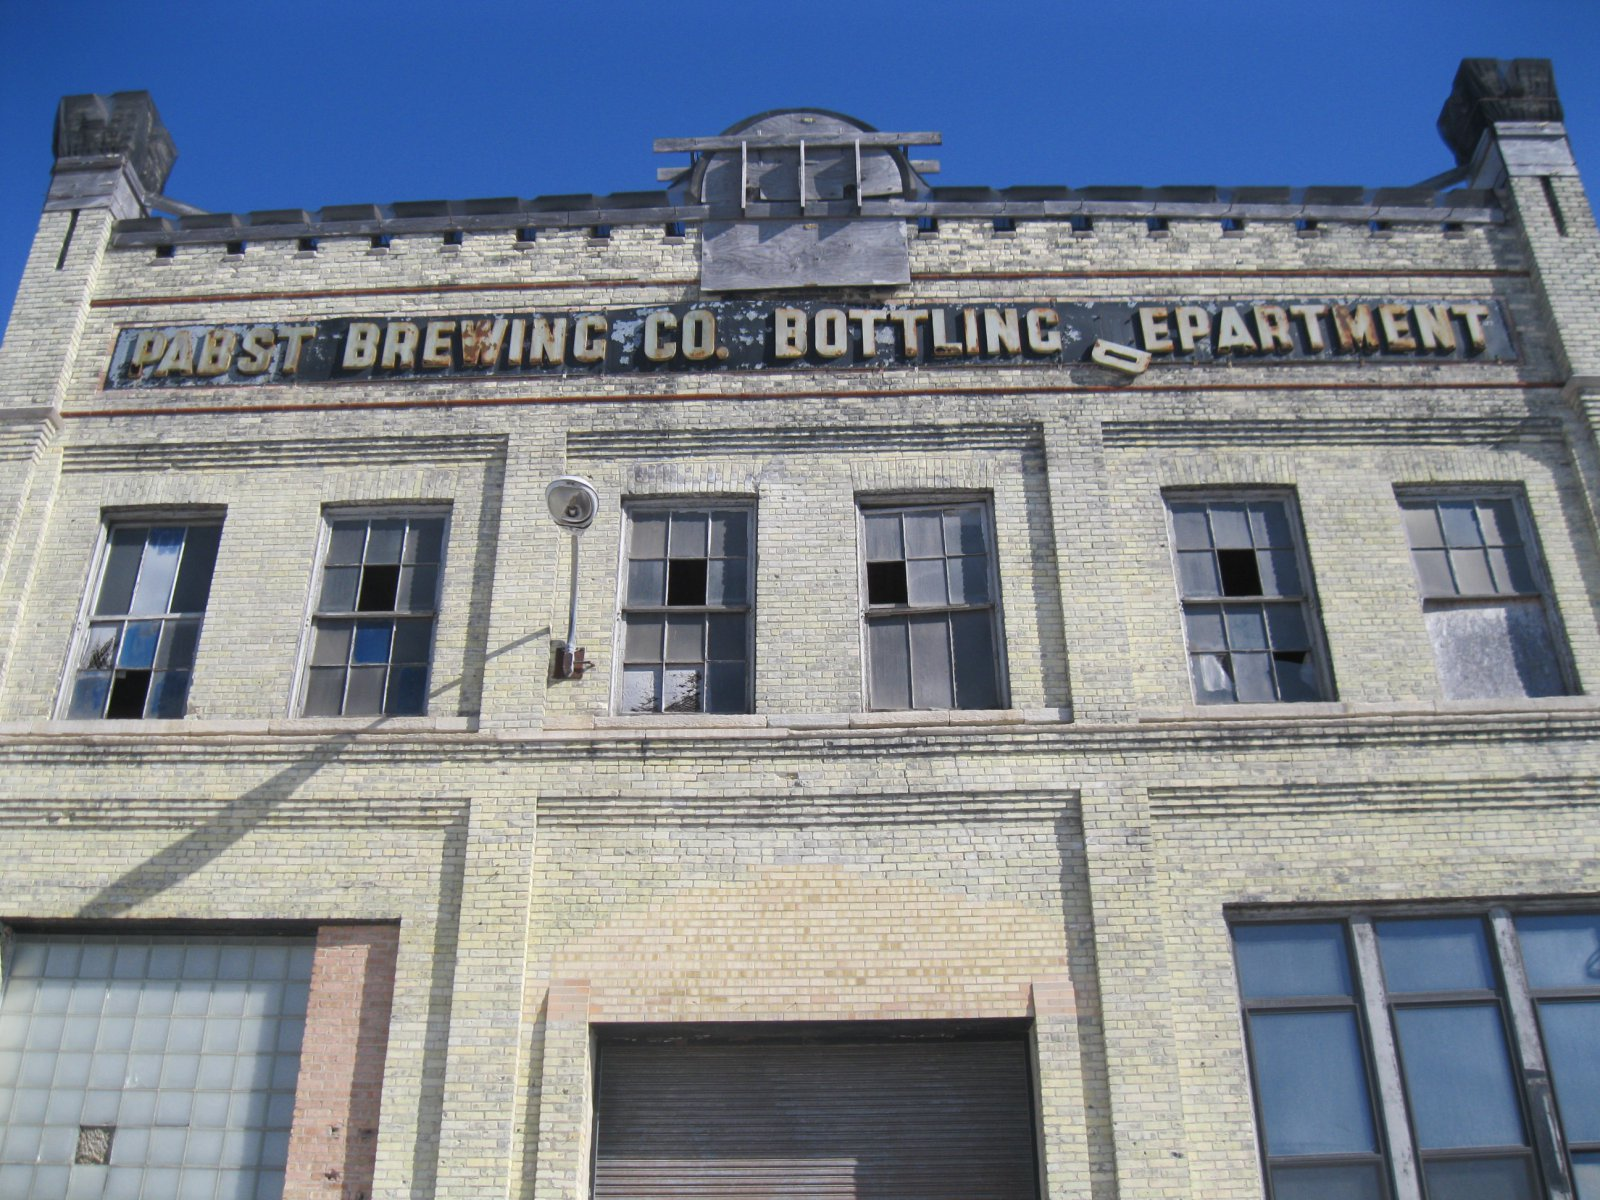 Pabst Brewing Co. Bottling Department